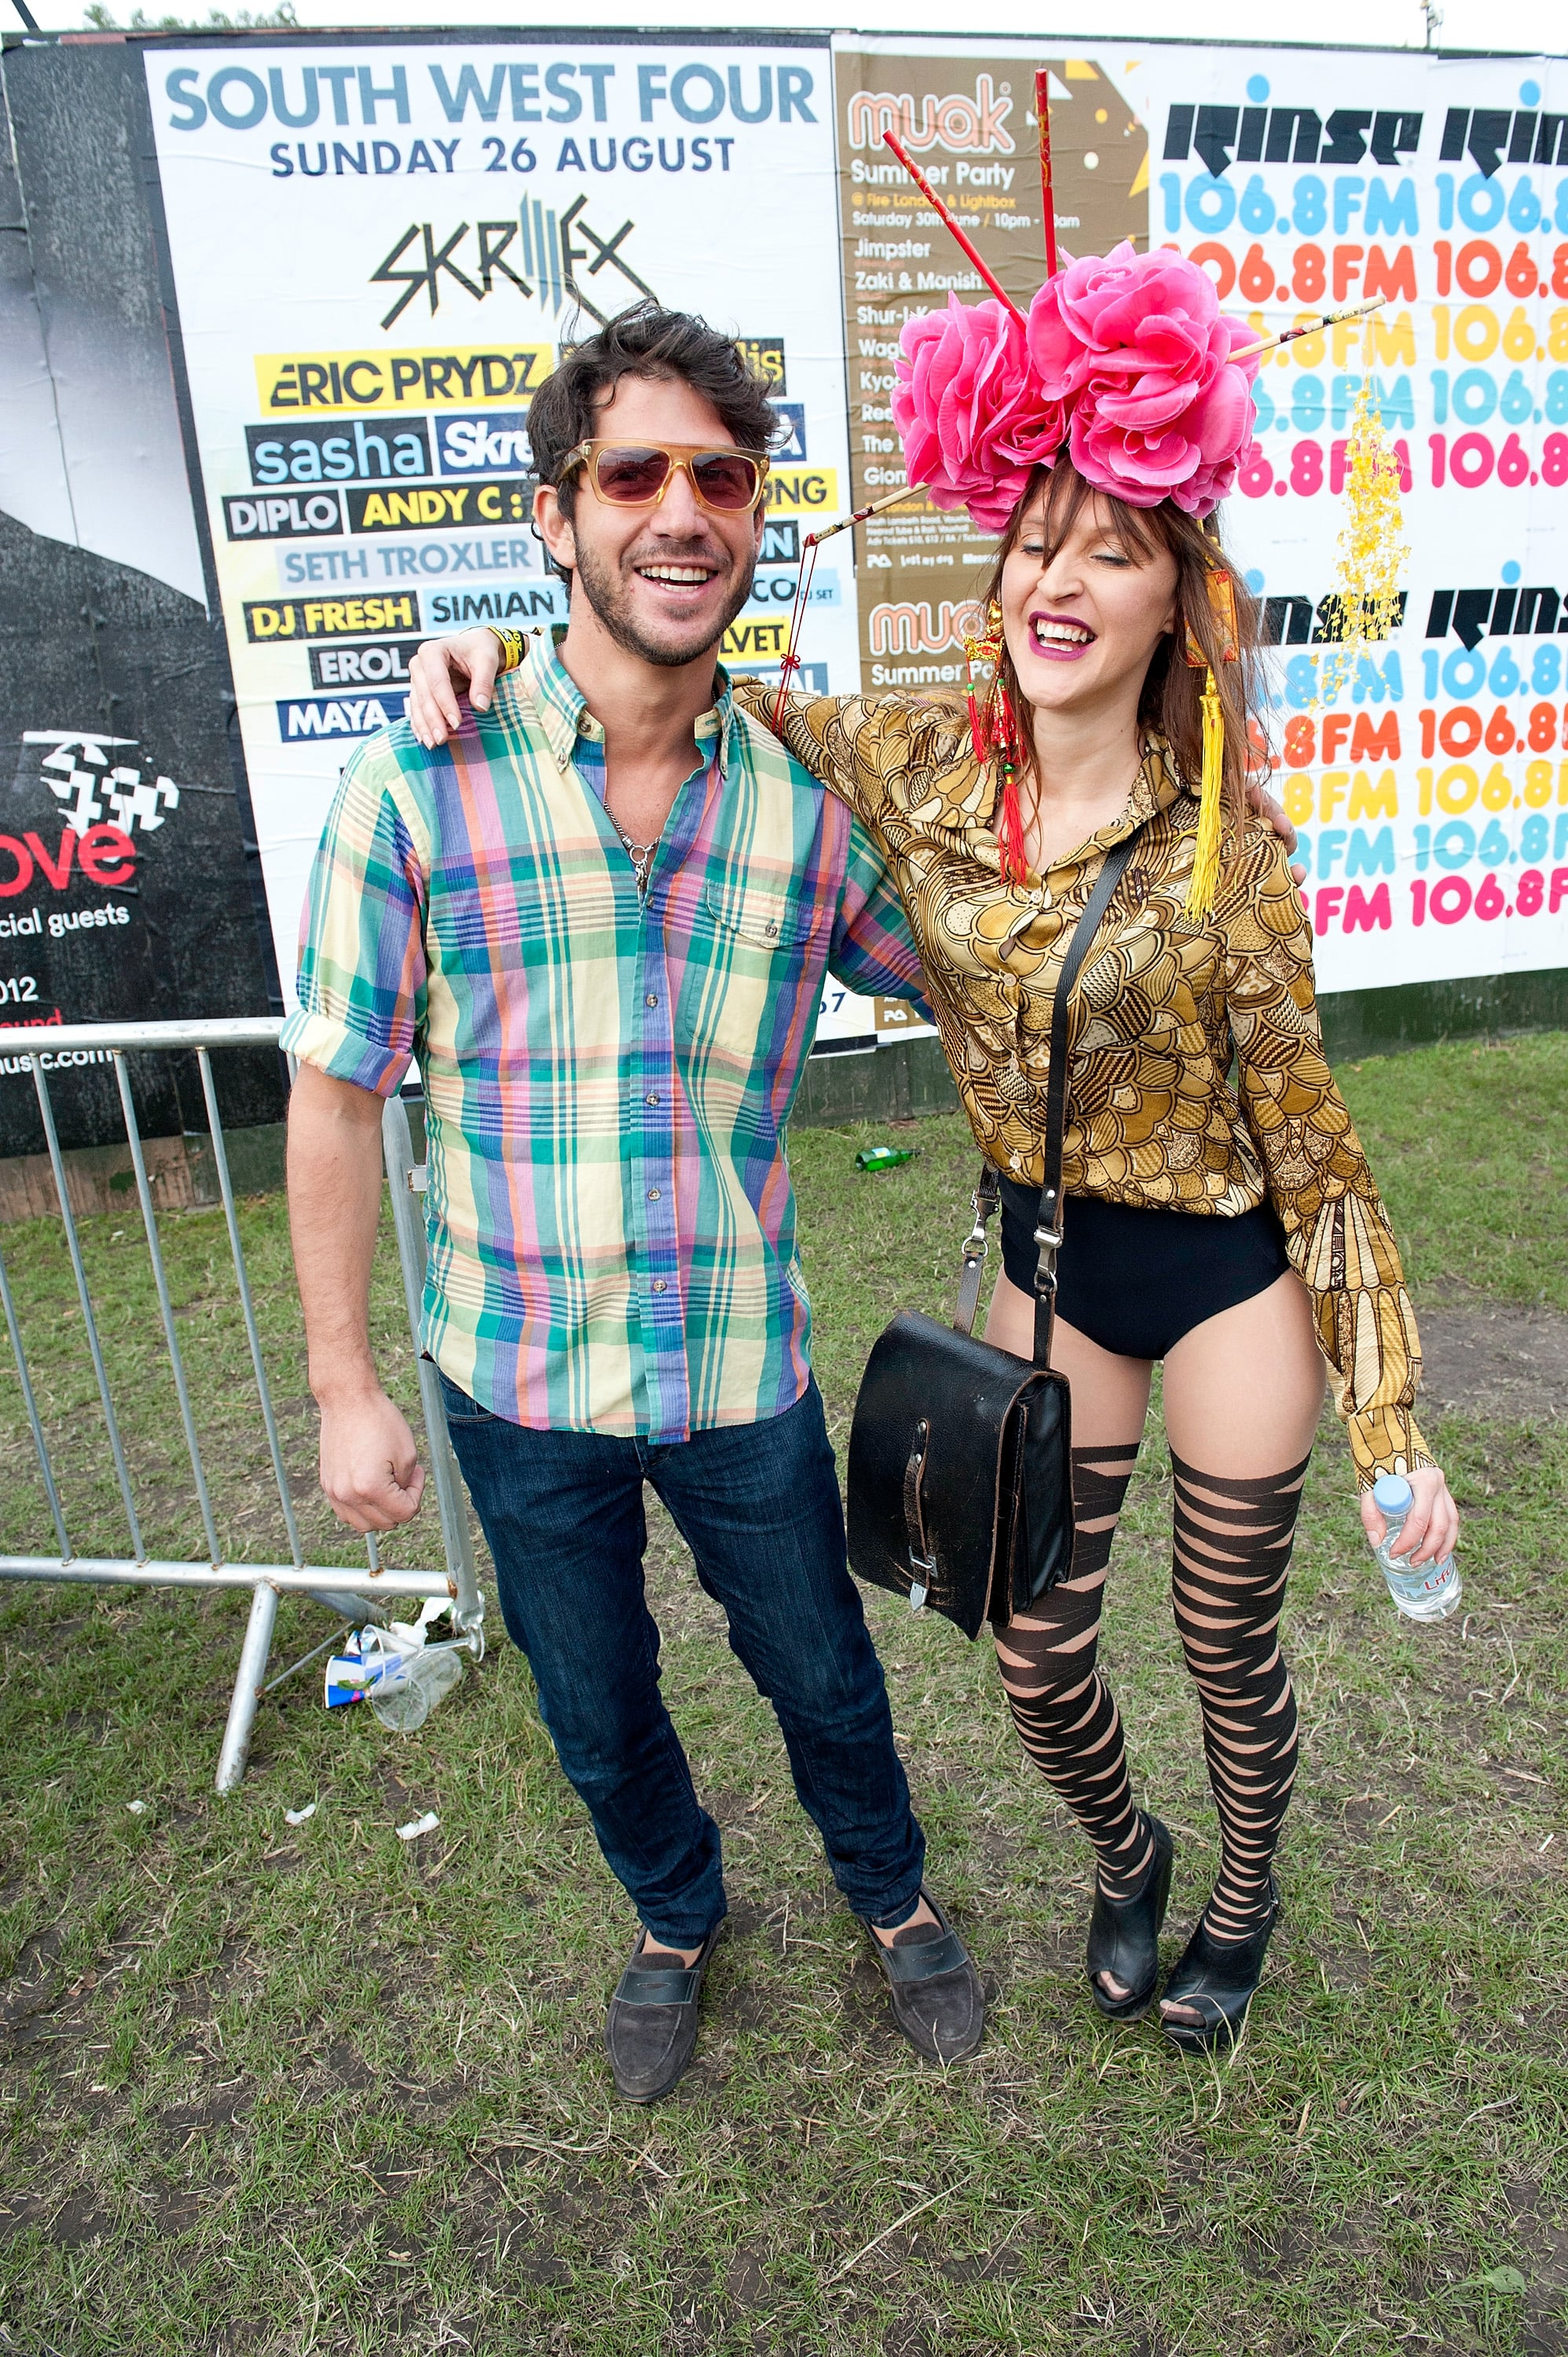 A wacky twosome posed at the Lovebox Festival at Victoria Park in London.